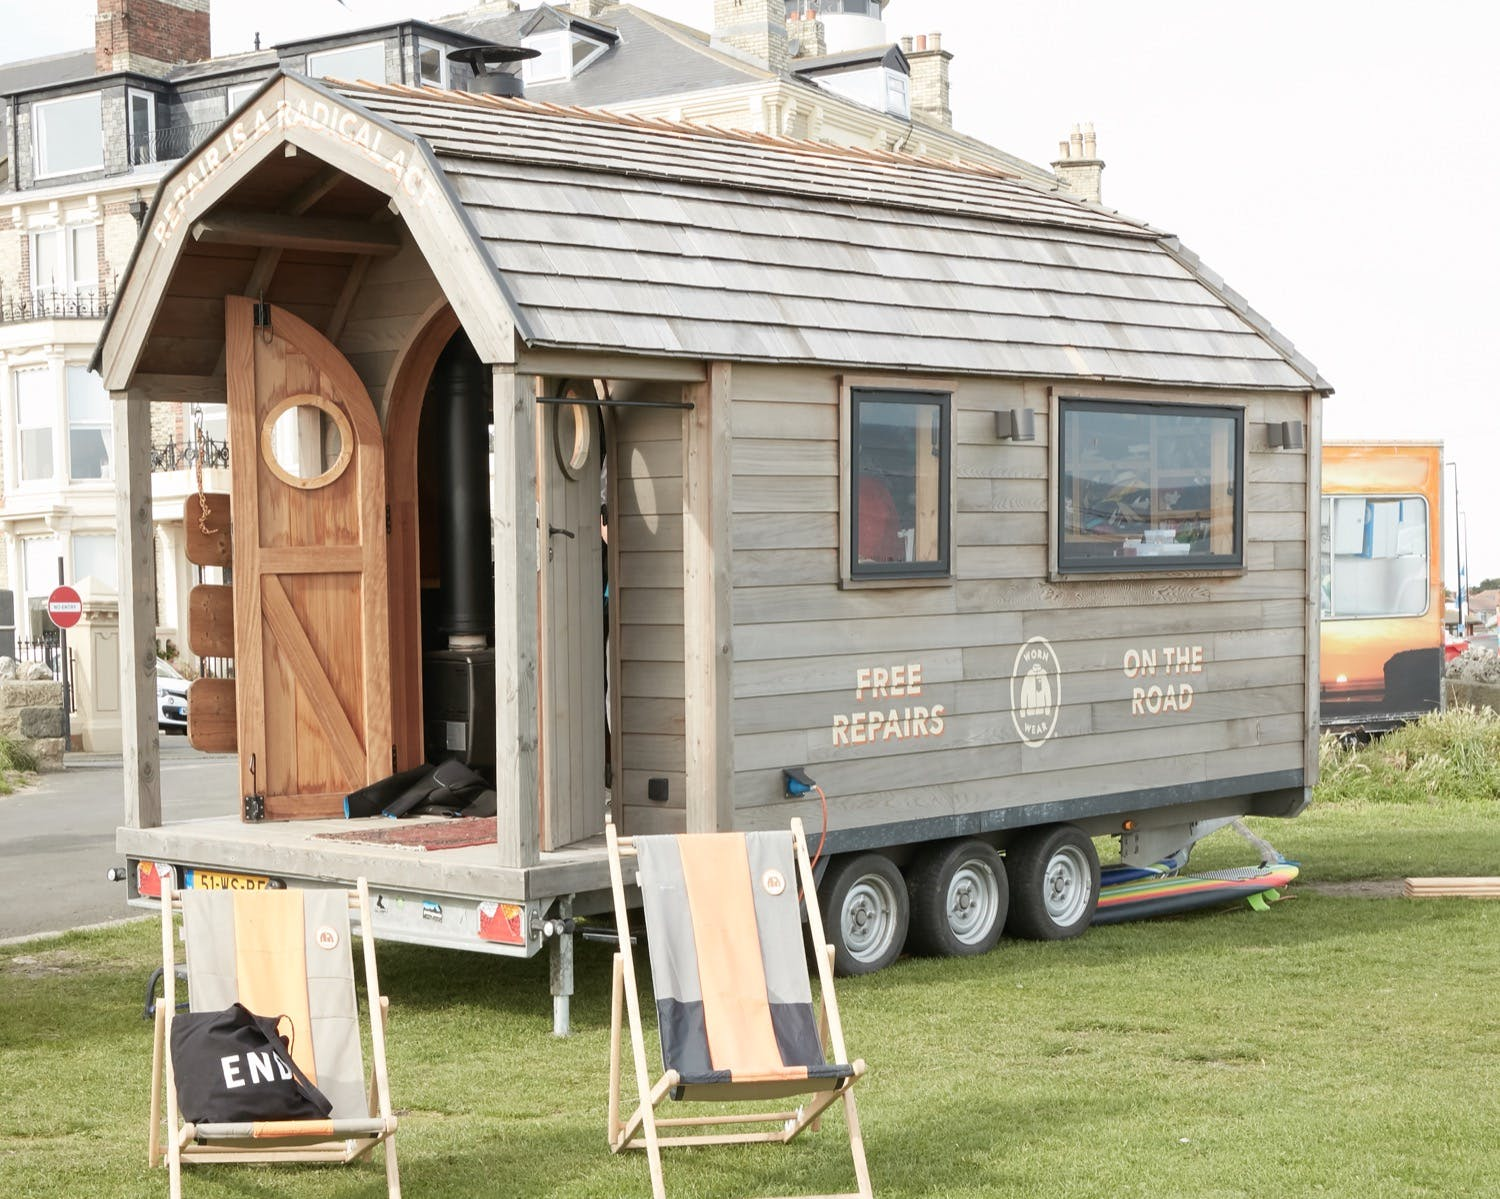 The Patagonia Worn Wear travelling trailer parked in Tynemouth summer 2019